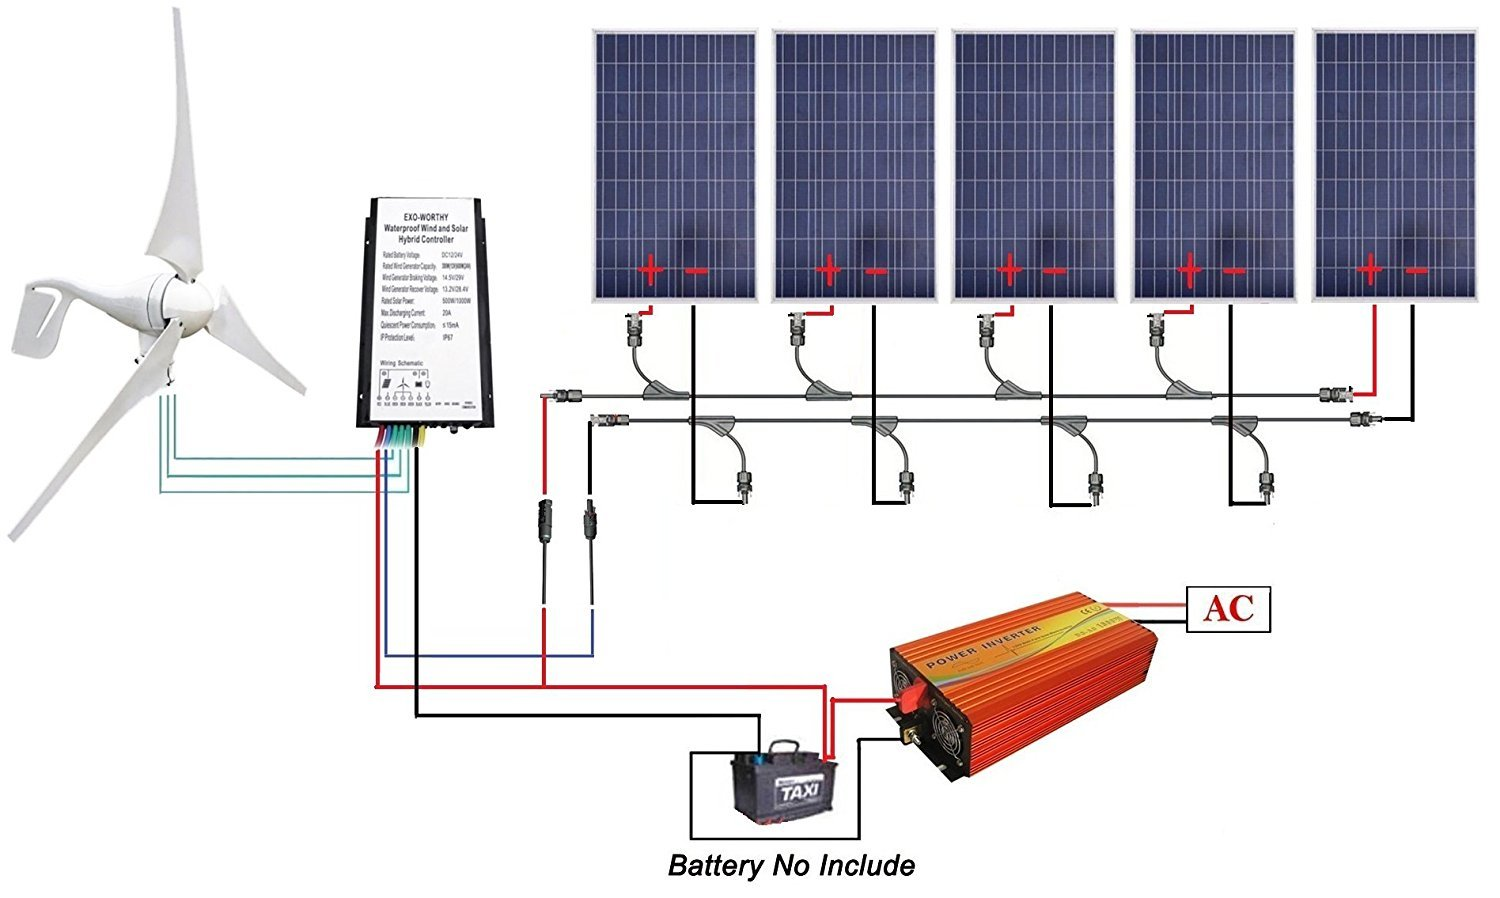 Eco Worthy 12v To 110v 900w Wind Solar Power 5pcs 100w Turbine Generator 3 Phase Wiring Diagram Poly Panels 1pc 24v 400w 1kw Off Grid Inverter